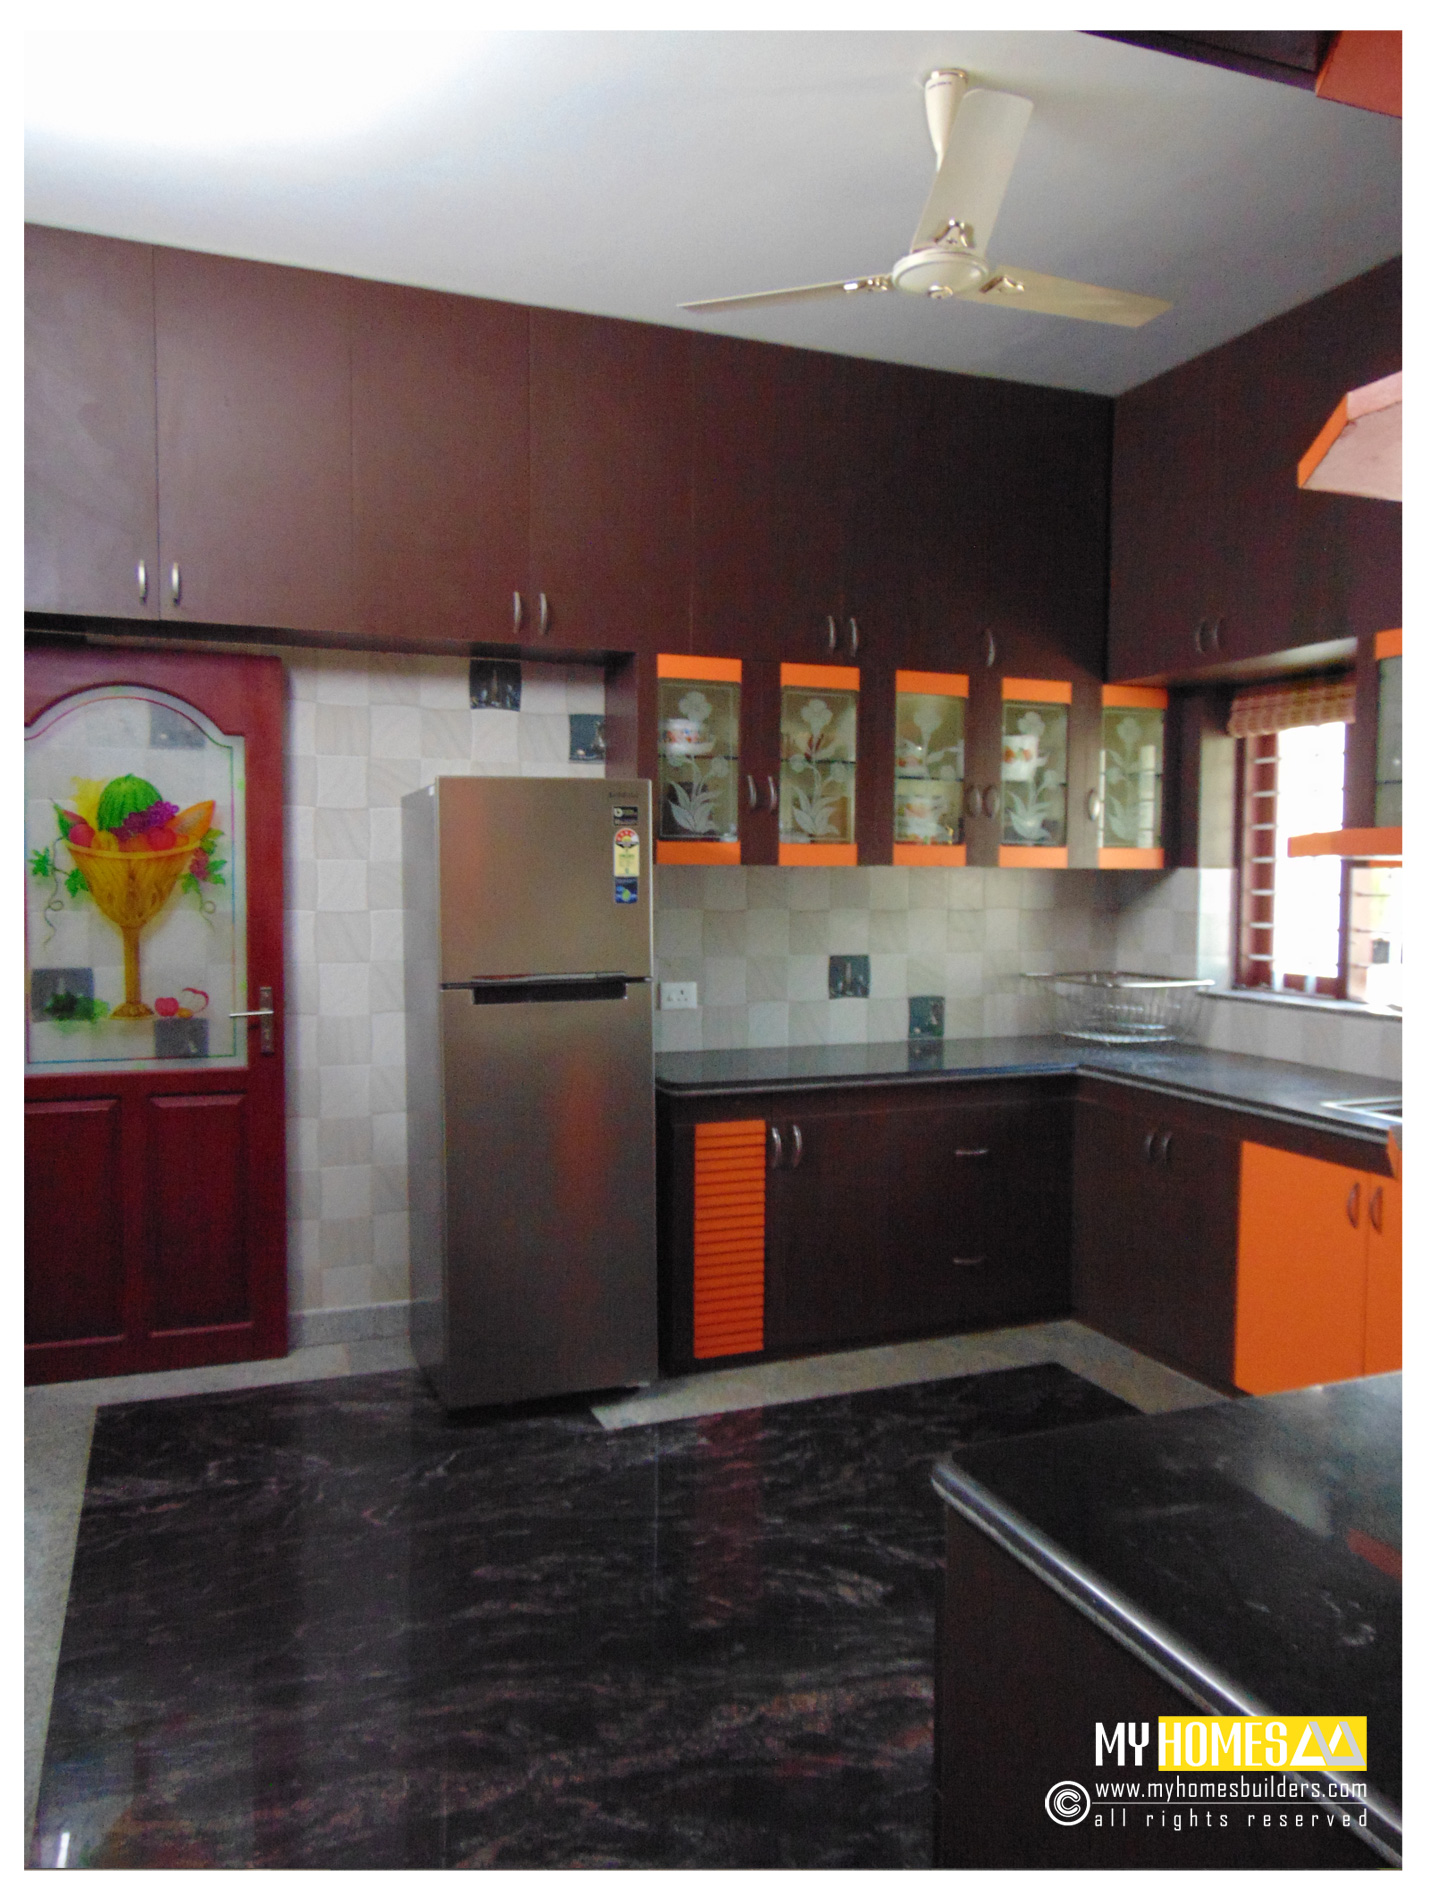 Kerala kitchen designs idea in modular style for house in for Home kitchen design images